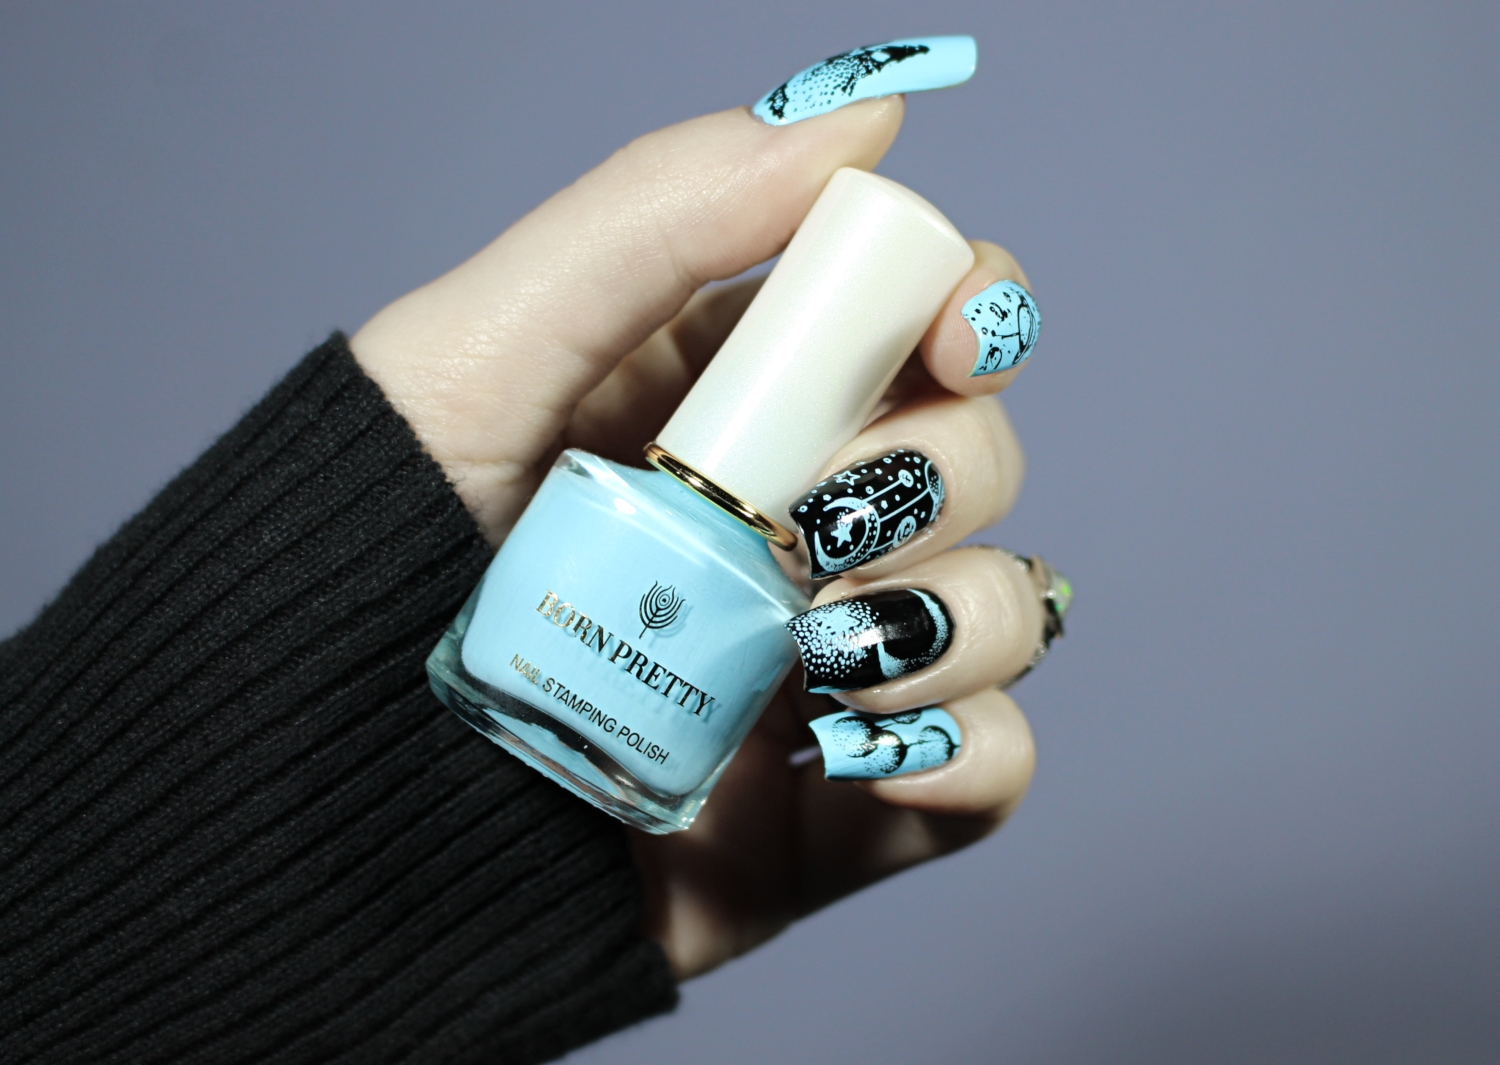 baby-blue and black nails with celestial designs on it